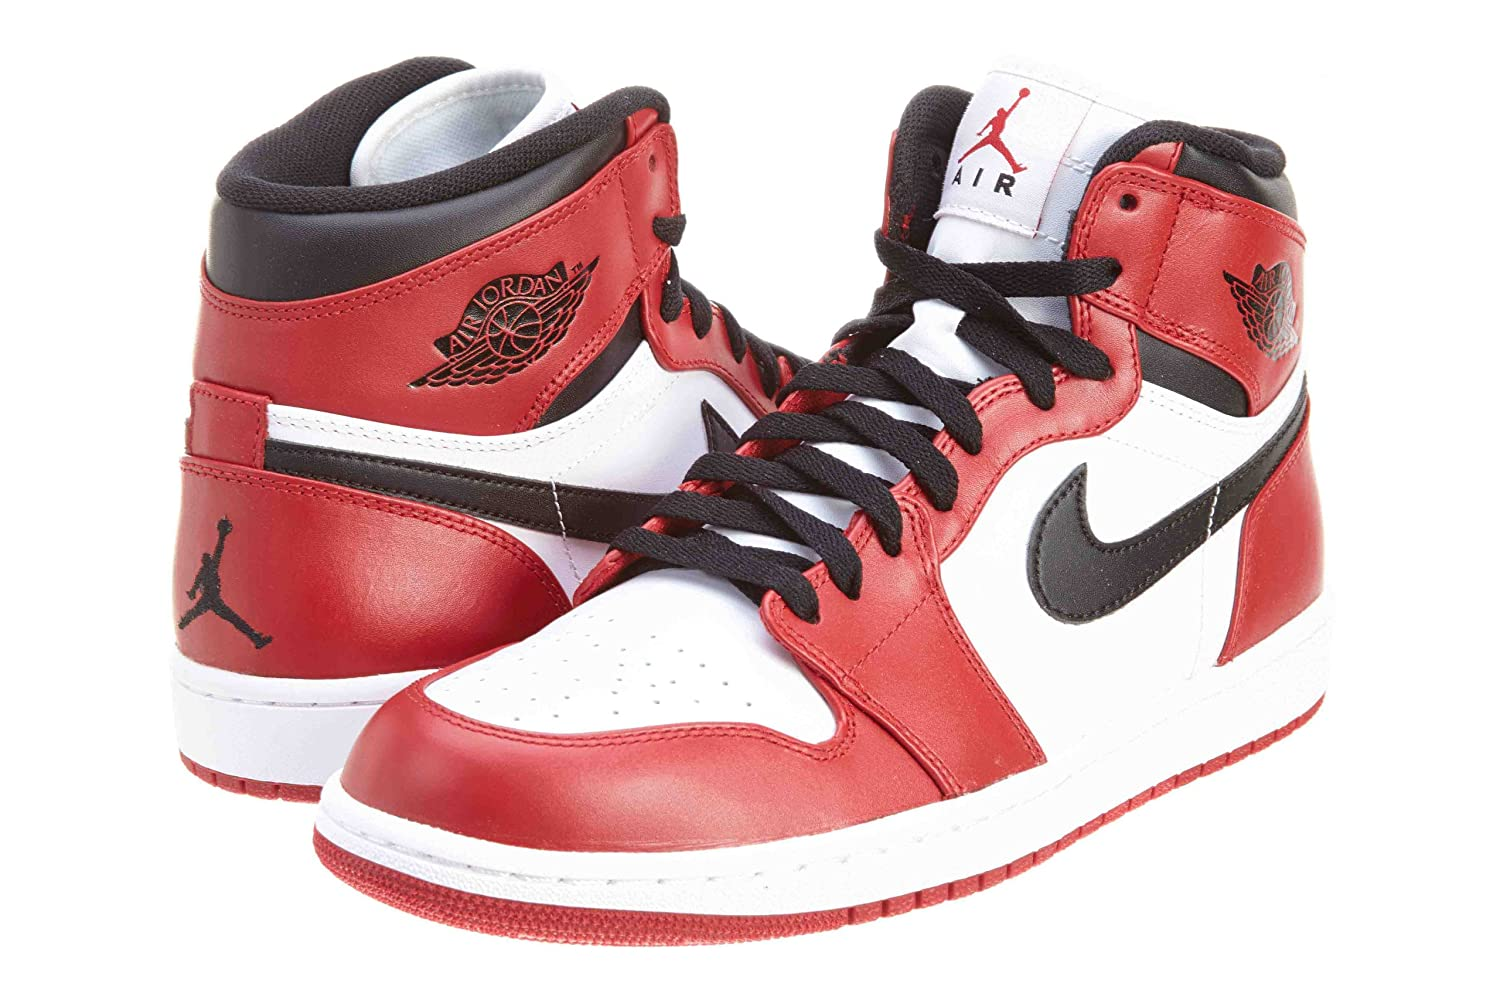 plus récent 1e8e8 b527c Amazon.com | Nike Mens Air Jordan 1 Retro High 2013 Chicago ...